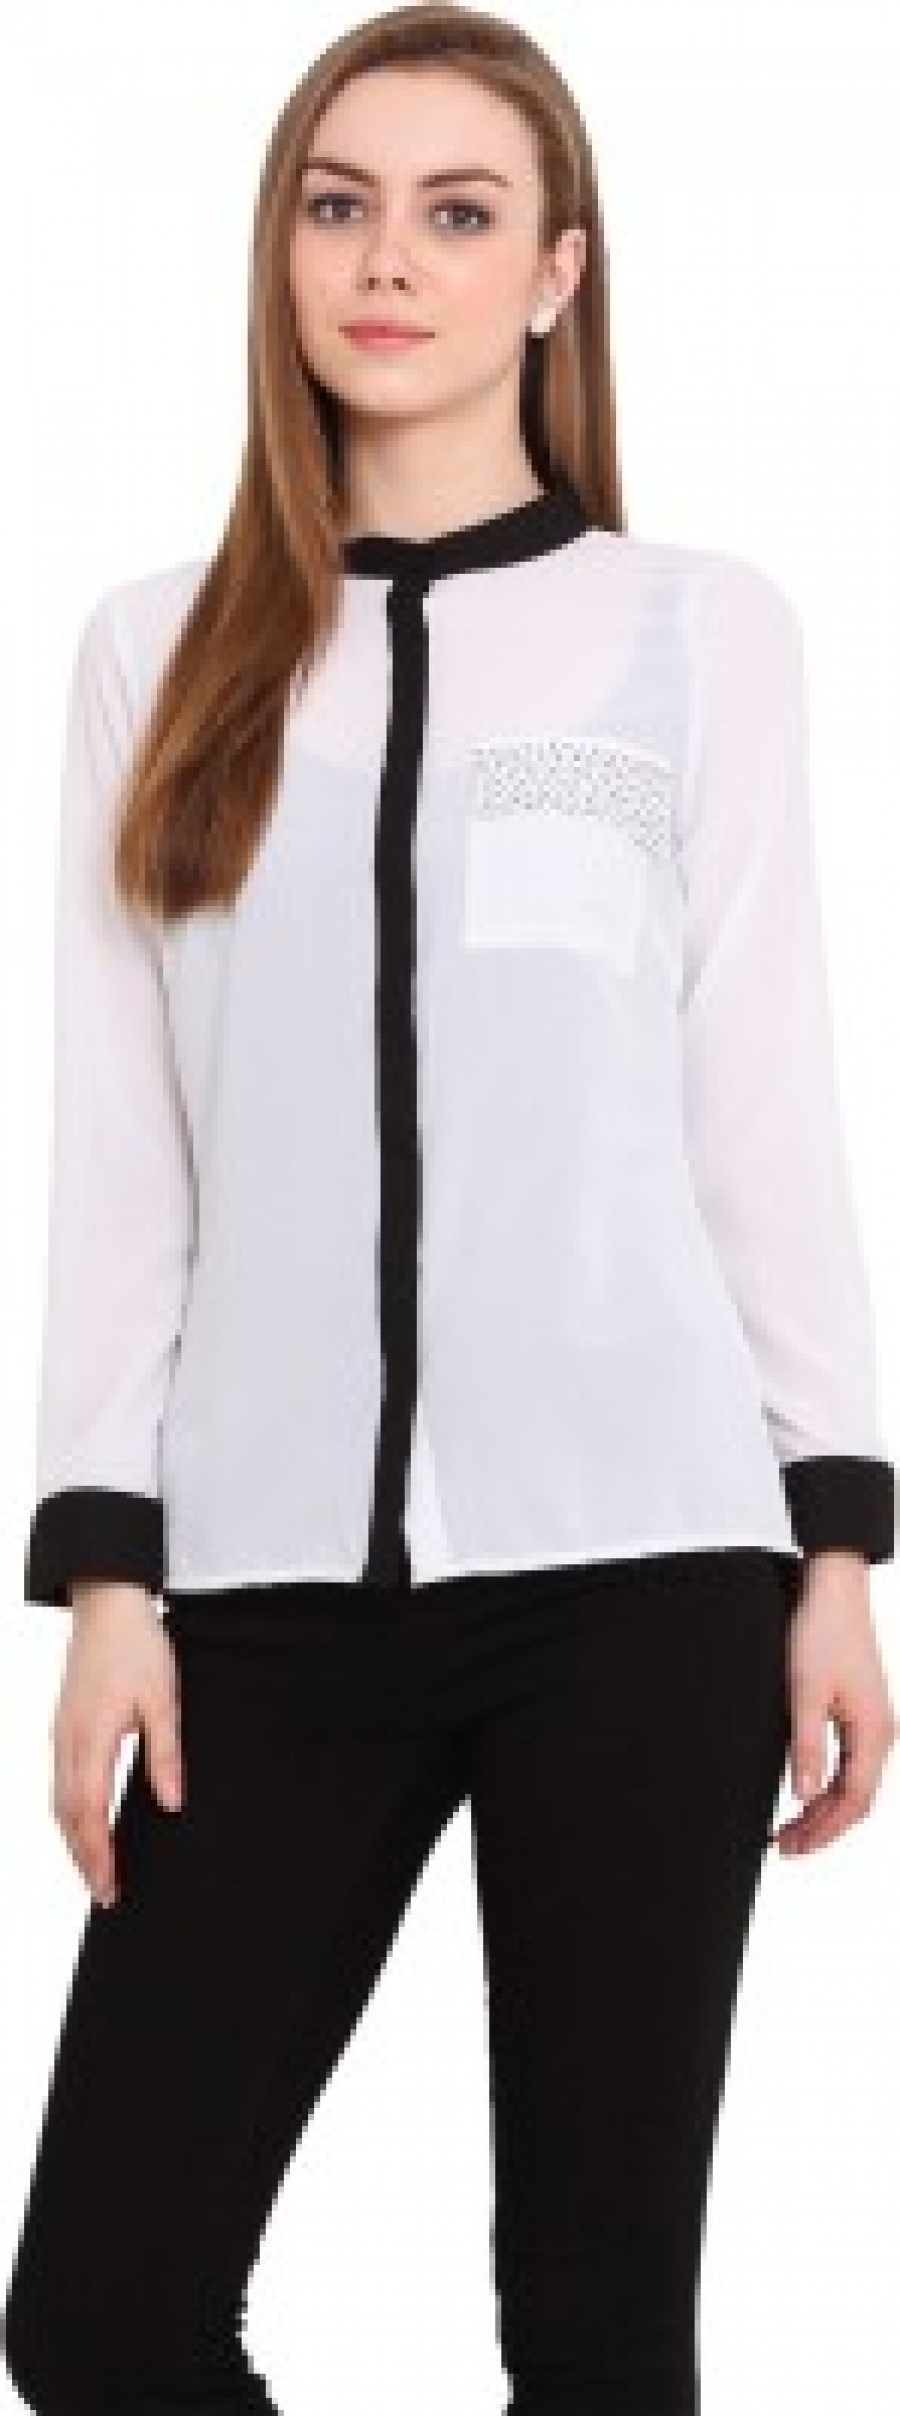 Buy Blink Womens Solid Casual White Shirt Online